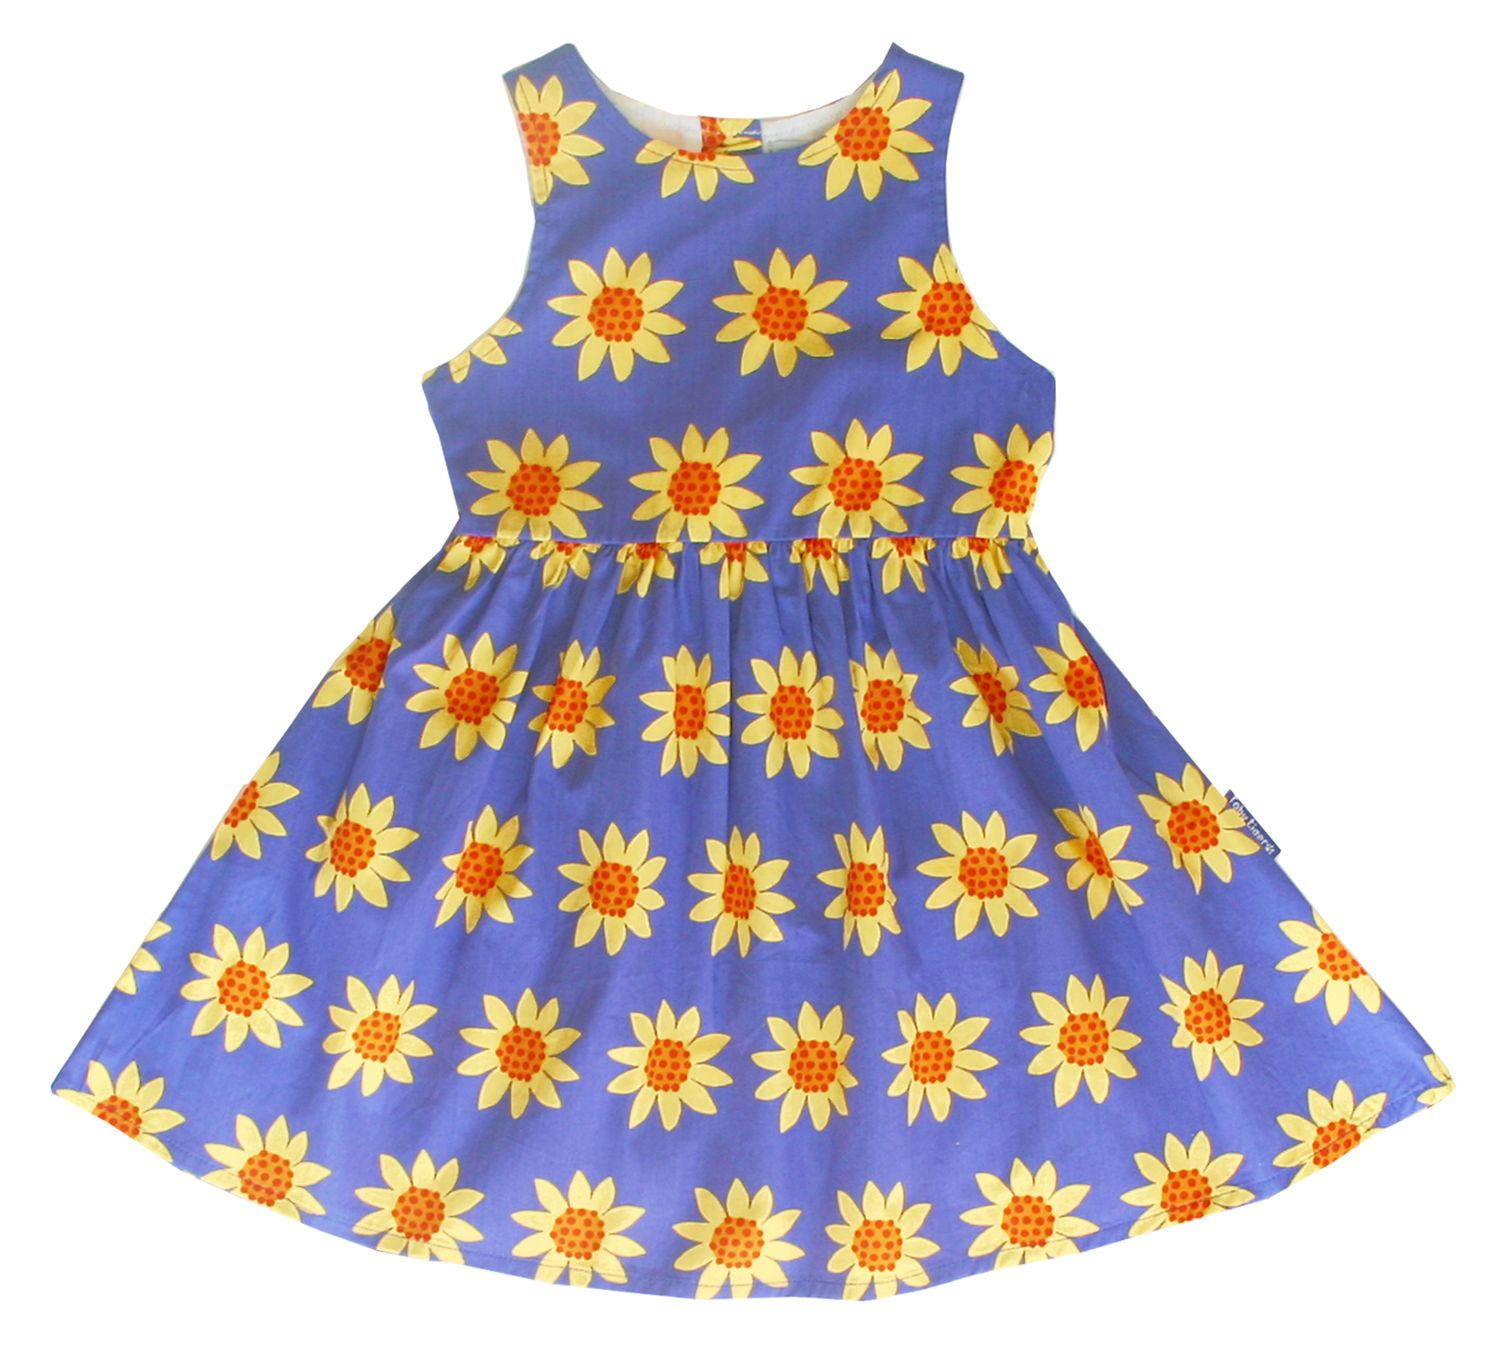 Toby Tiger Toby Tiger Girl`s party dress in sunflower, Blue